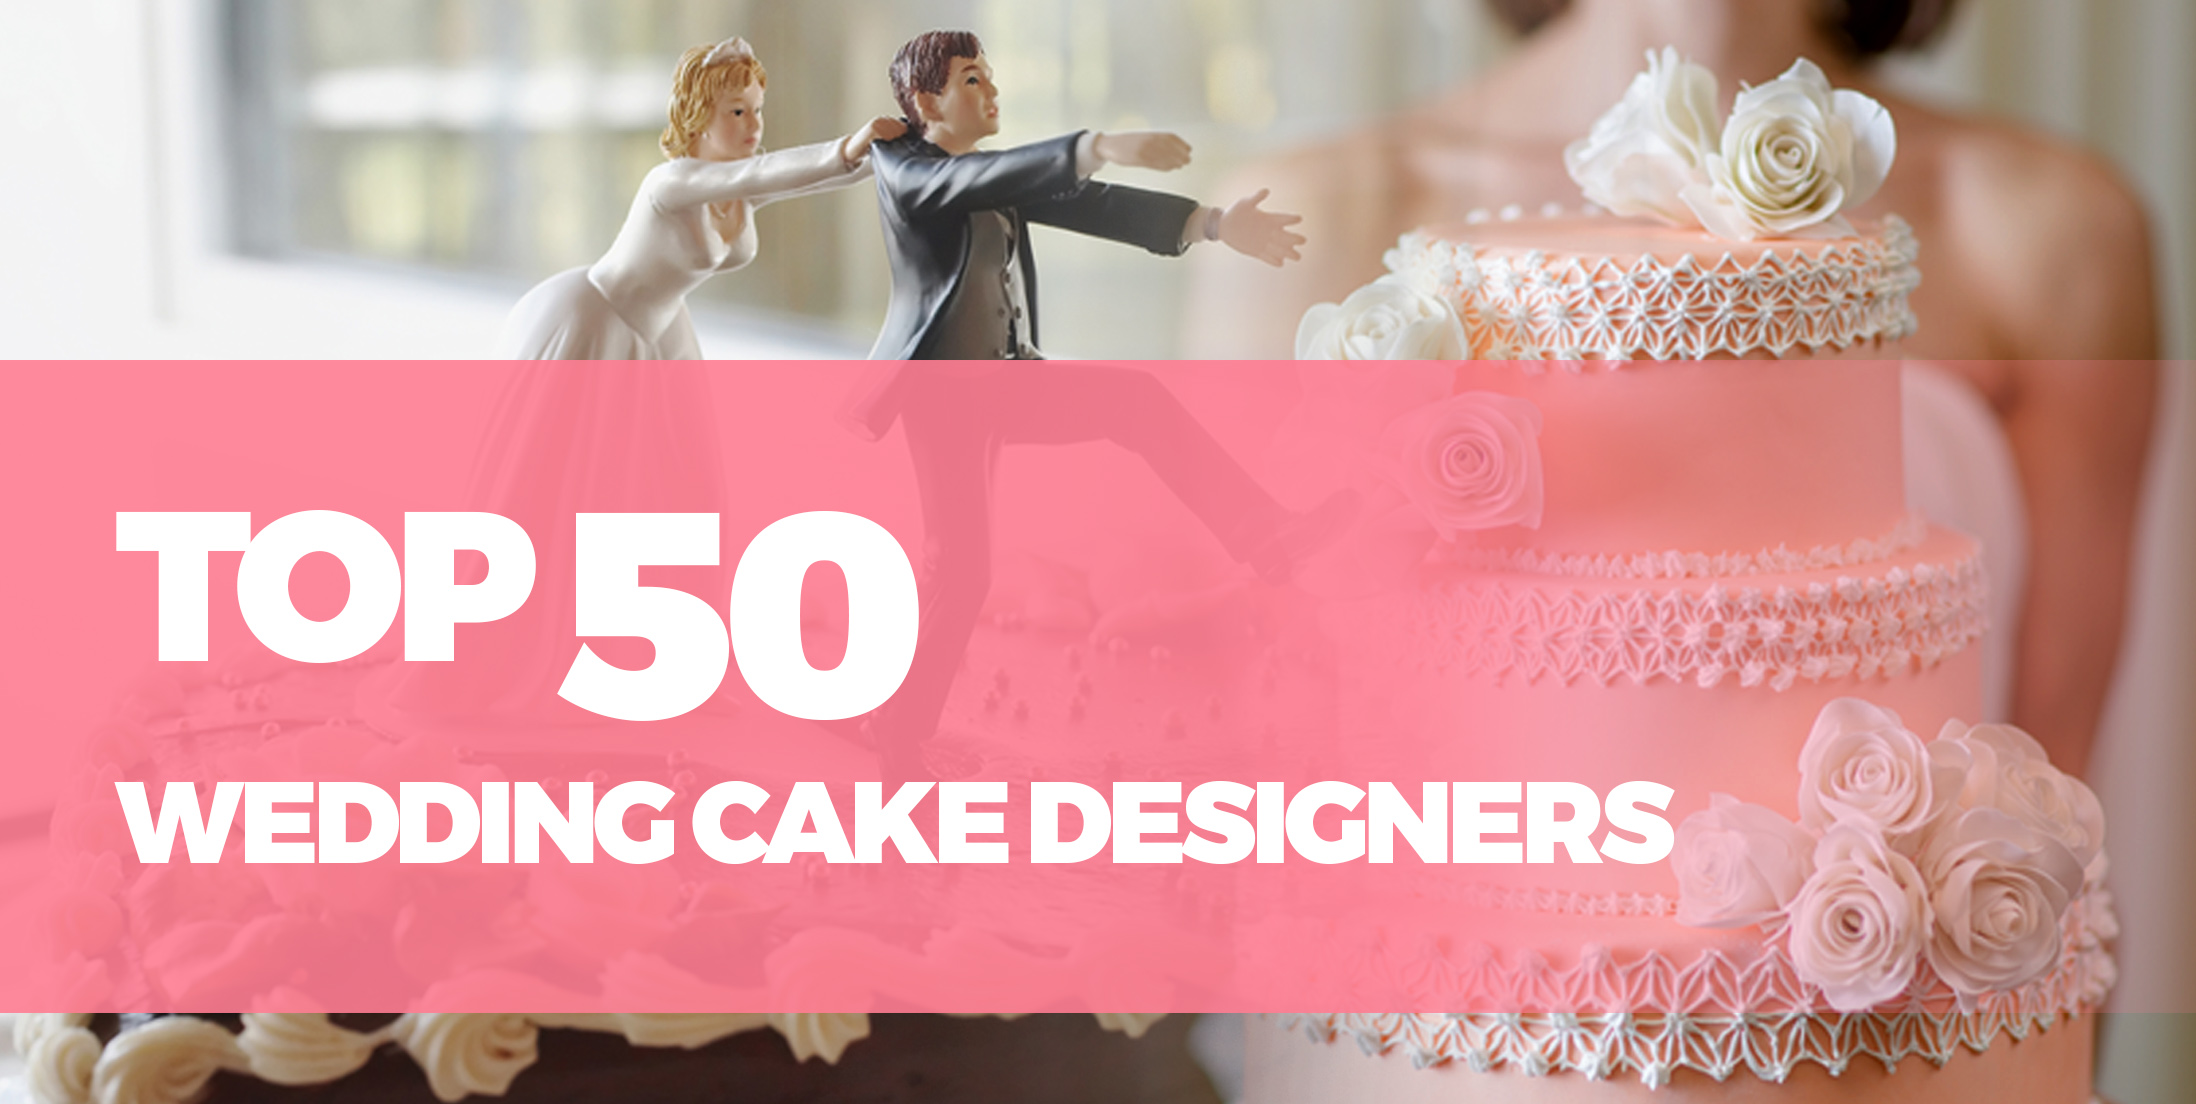 Top 50 Wedding Cake Designers